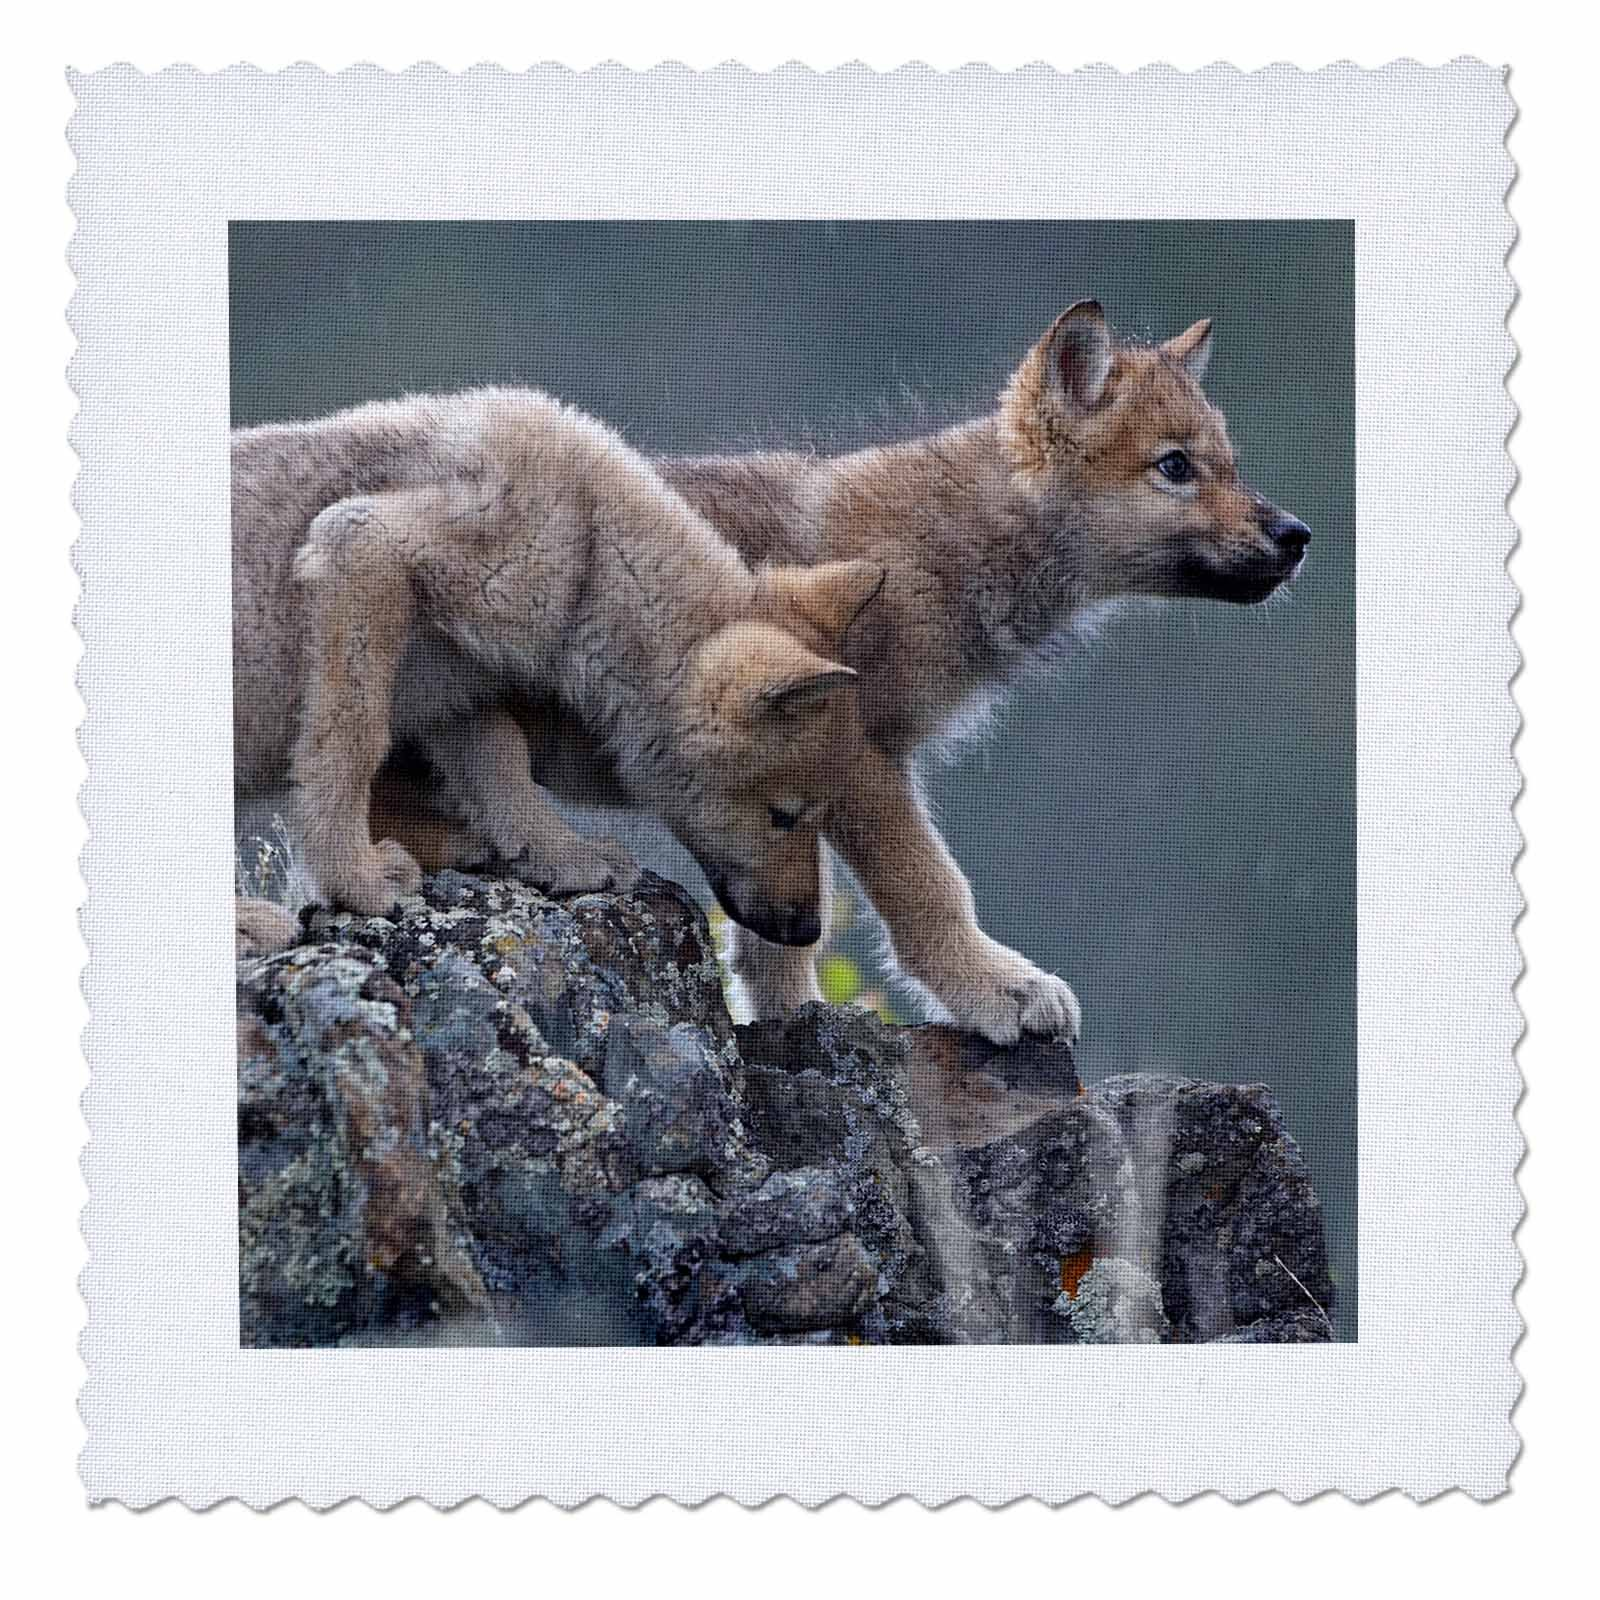 3dRose Danita Delimont - Baby Animals - Gray wolf pups, Canis lupus, on a rock in the snow, Montana - 20x20 inch quilt square (qs_259638_8)